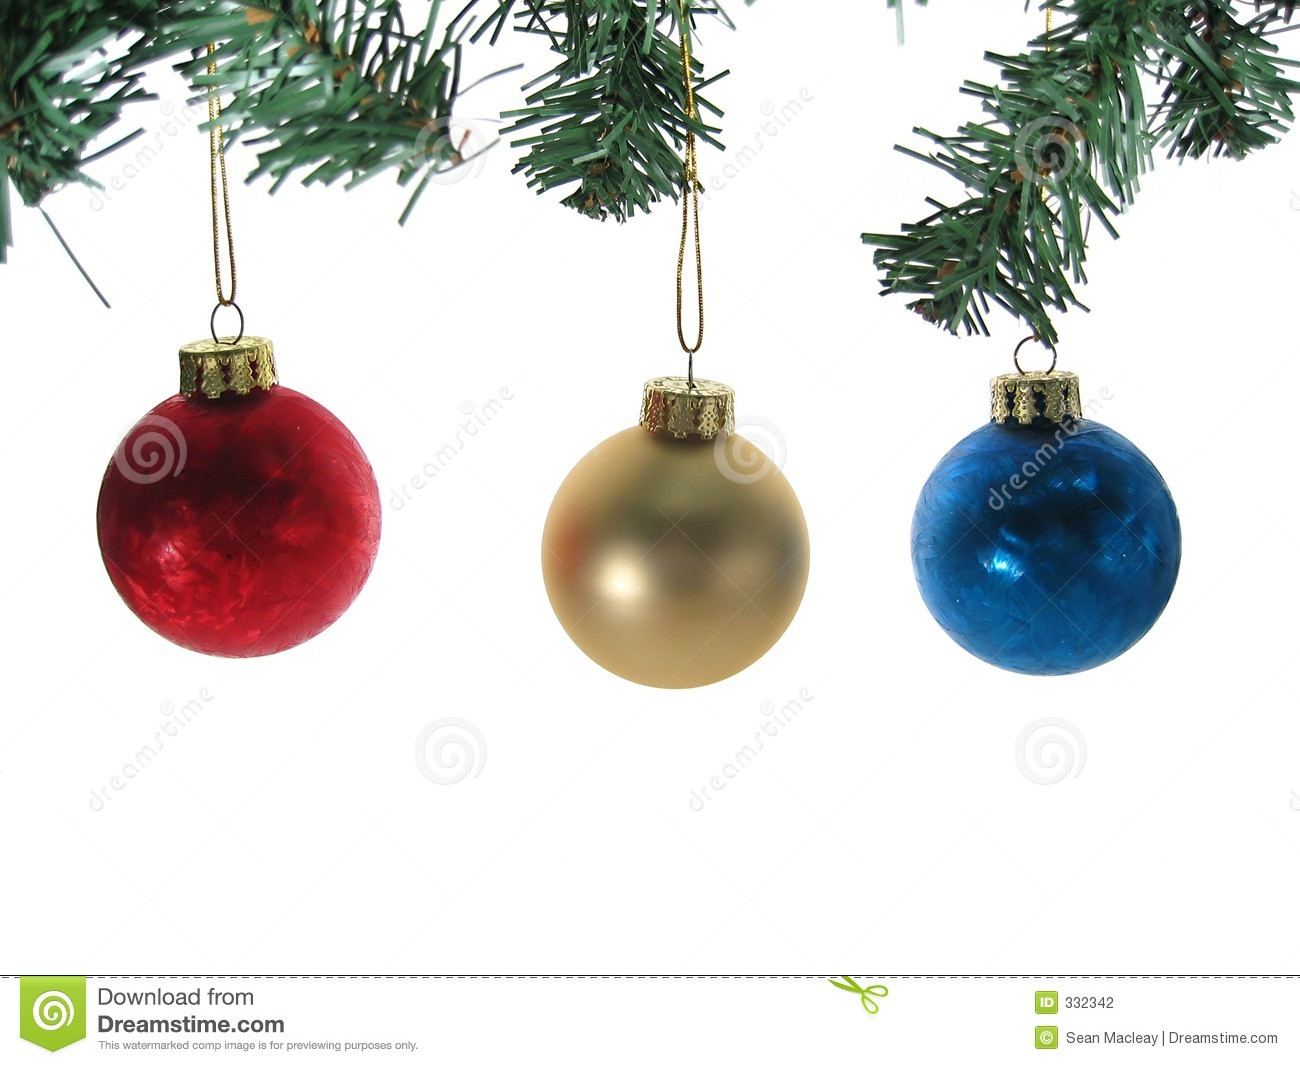 Best Of Christmas Tree Ball ornaments Invitation Template Christmas Tree Ball ornaments Of Charming 46 Ideas Christmas Tree Ball ornaments